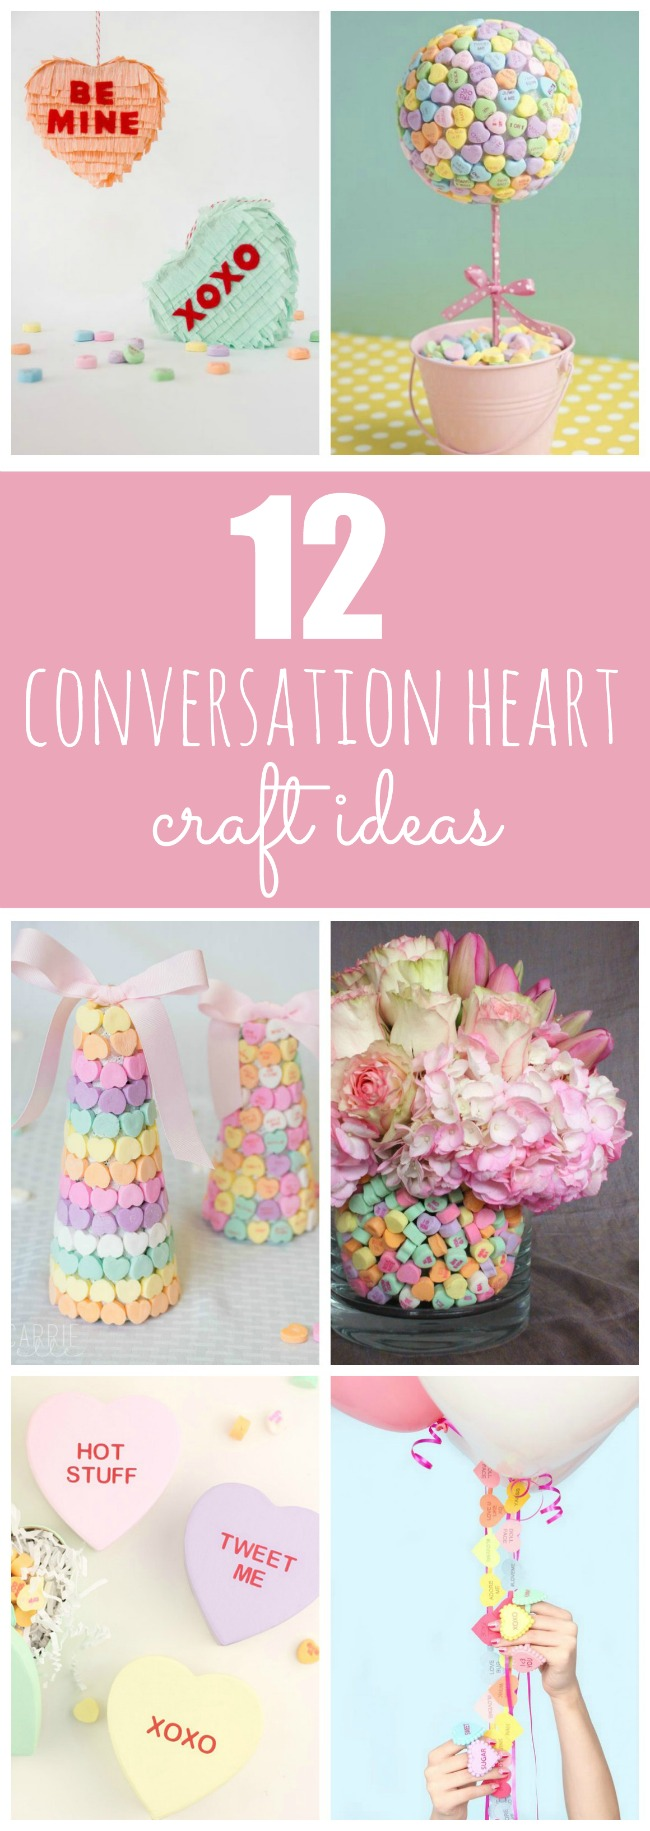 DIY Conversation Heart Craft Ideas